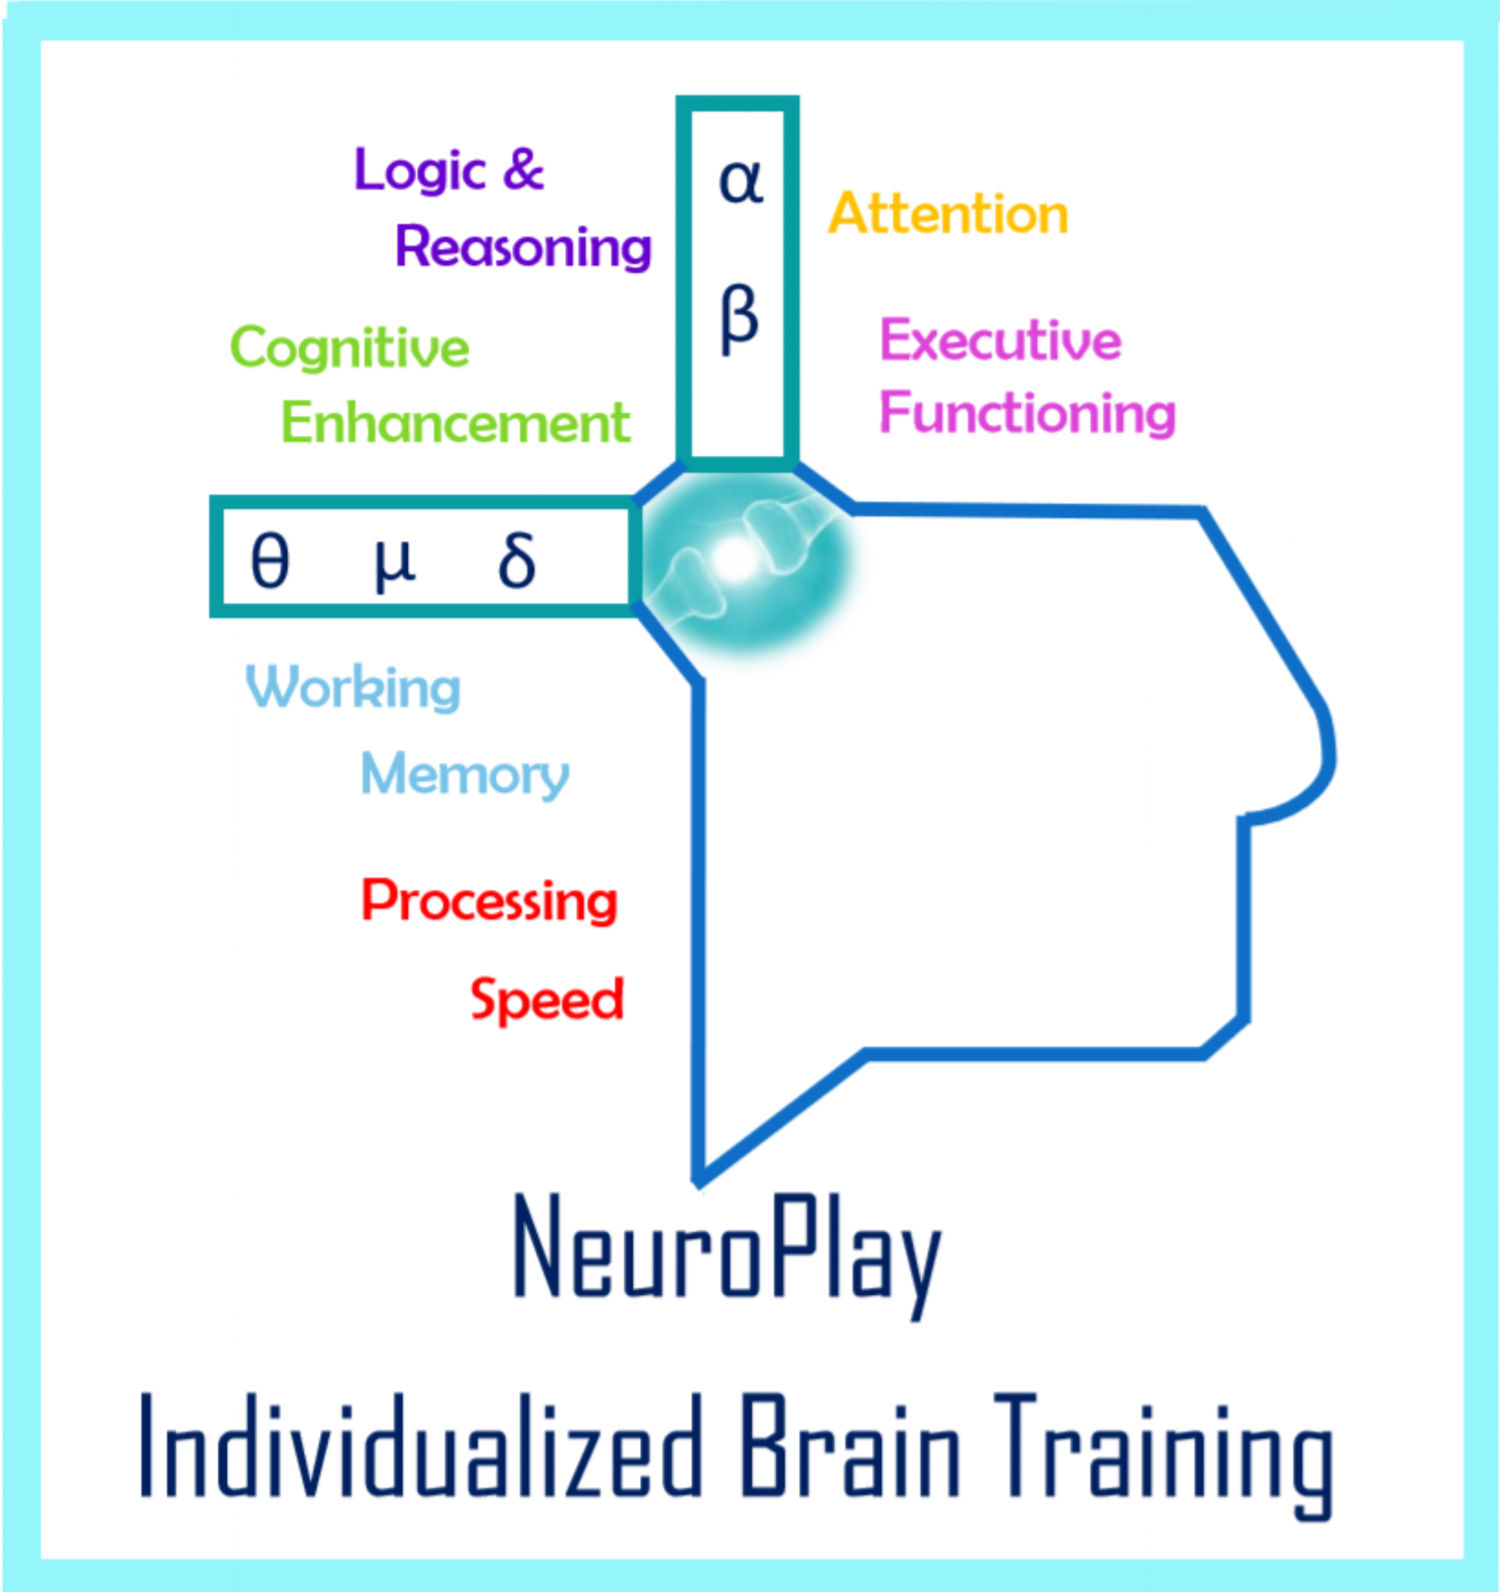 NeuroPlay brain training